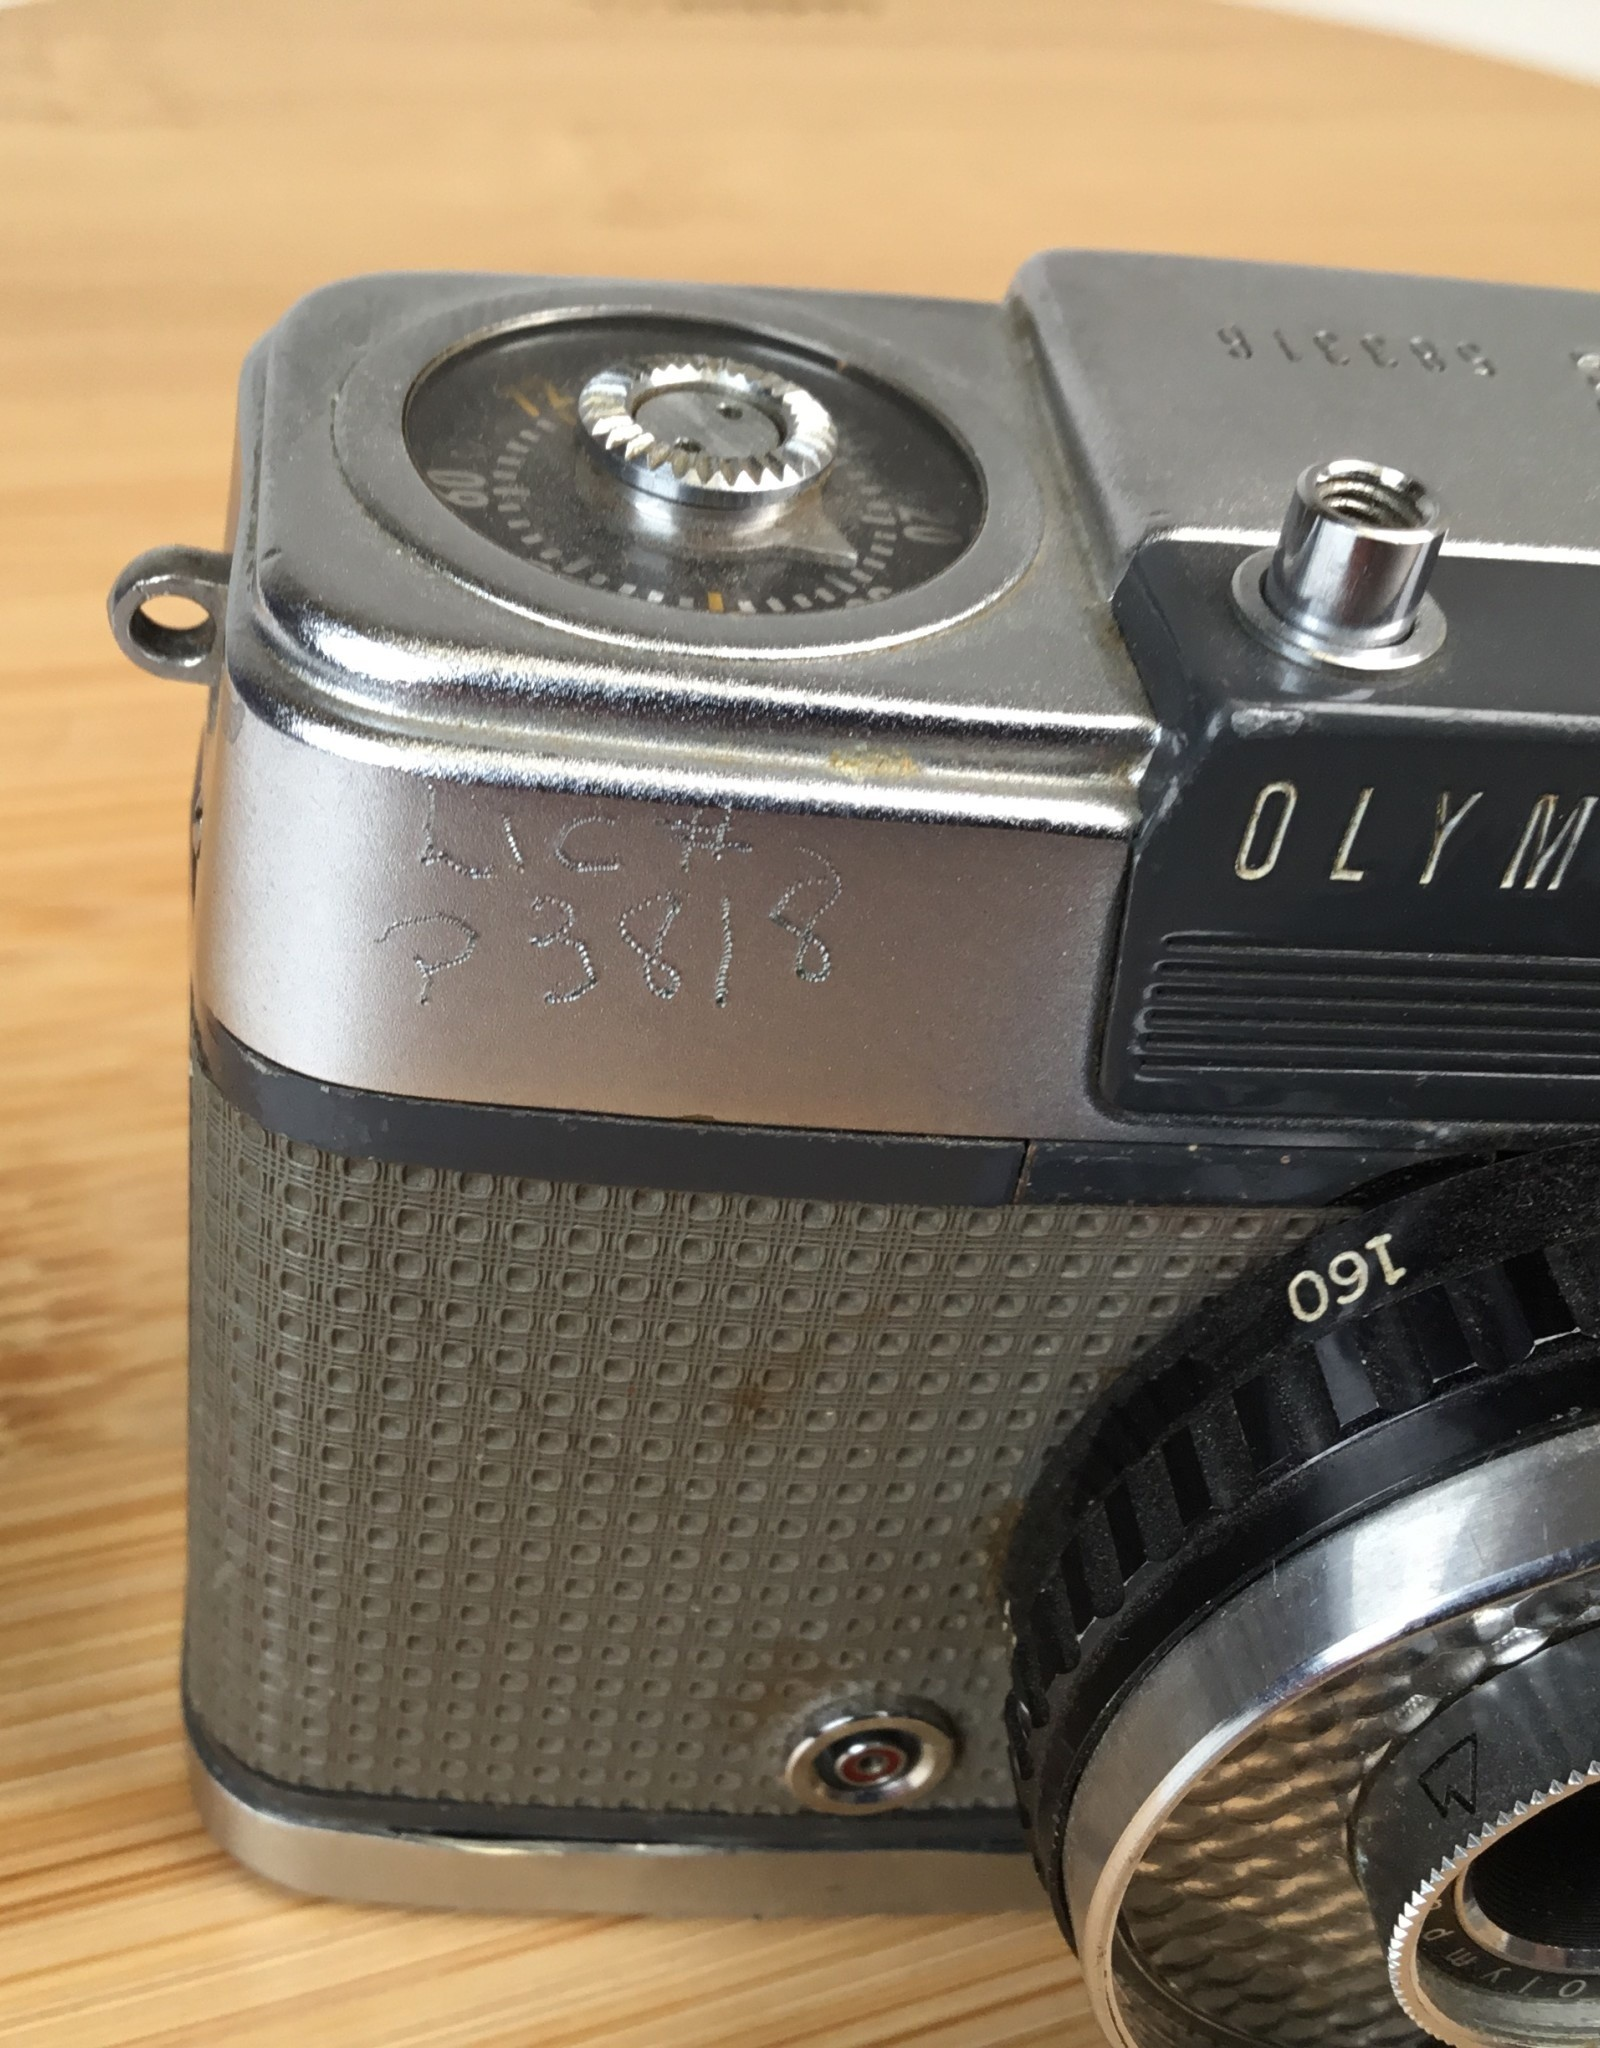 Olympus Pen-EE S Camera Sold AS IS for Parts Used